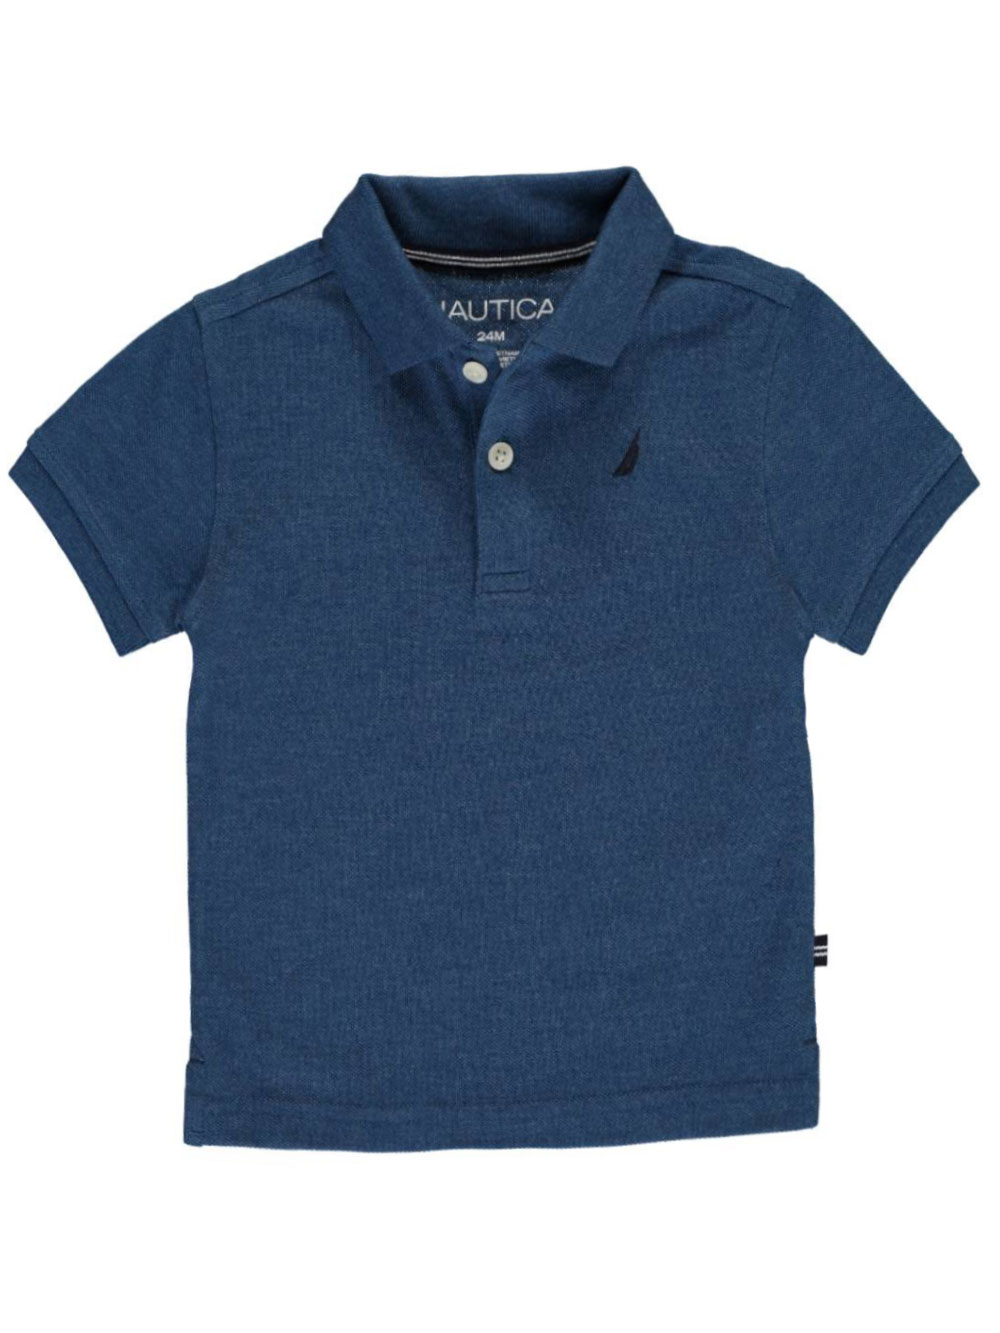 Image of Nautica Baby Boys Solid State Pique Polo  titanic blue 24 months